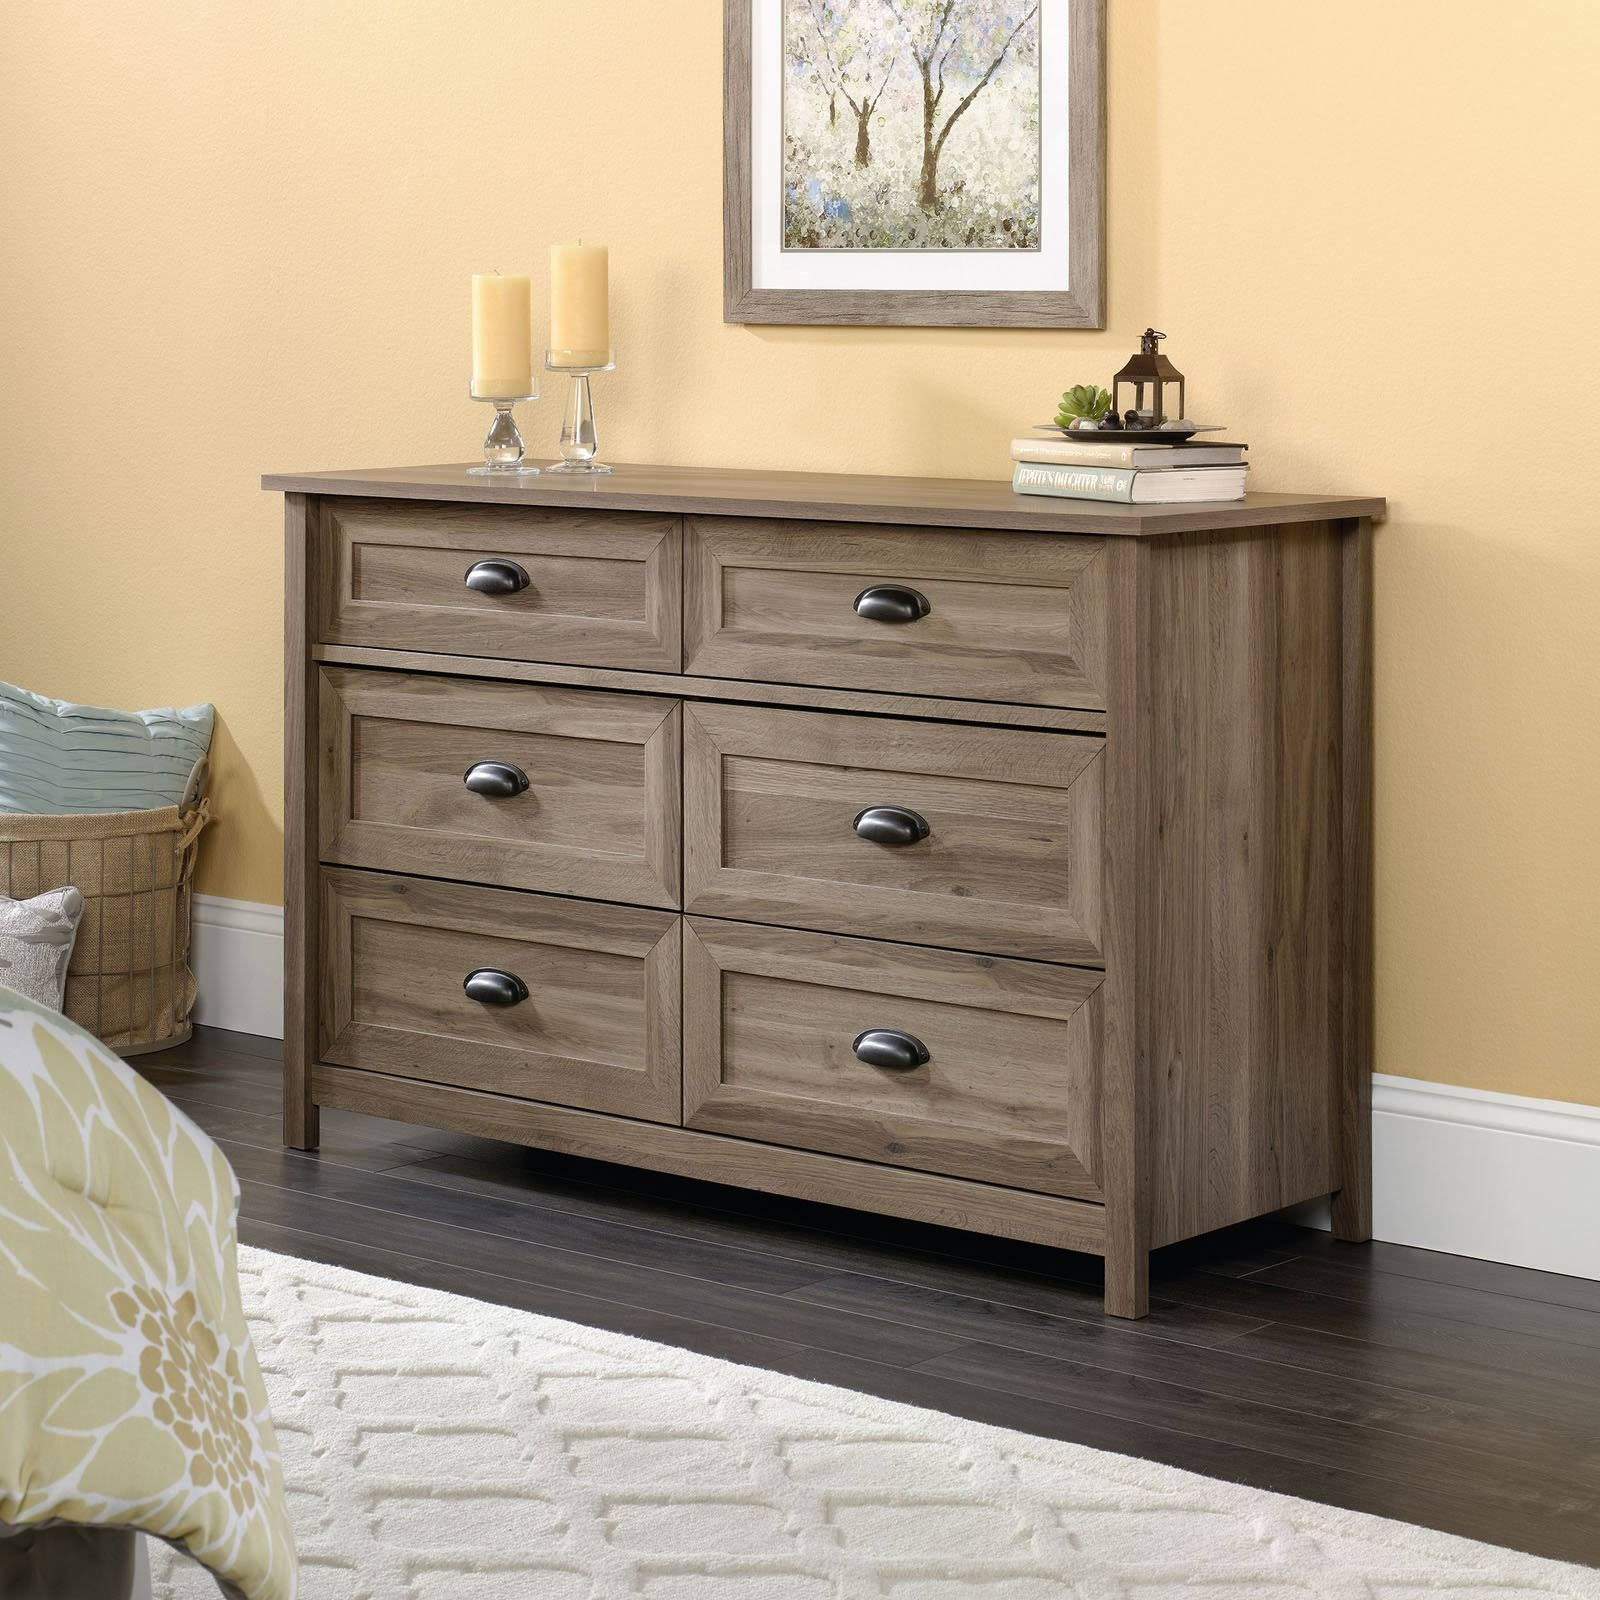 Sauder County Line 6 Drawer Dresser - Salt Oak Finish